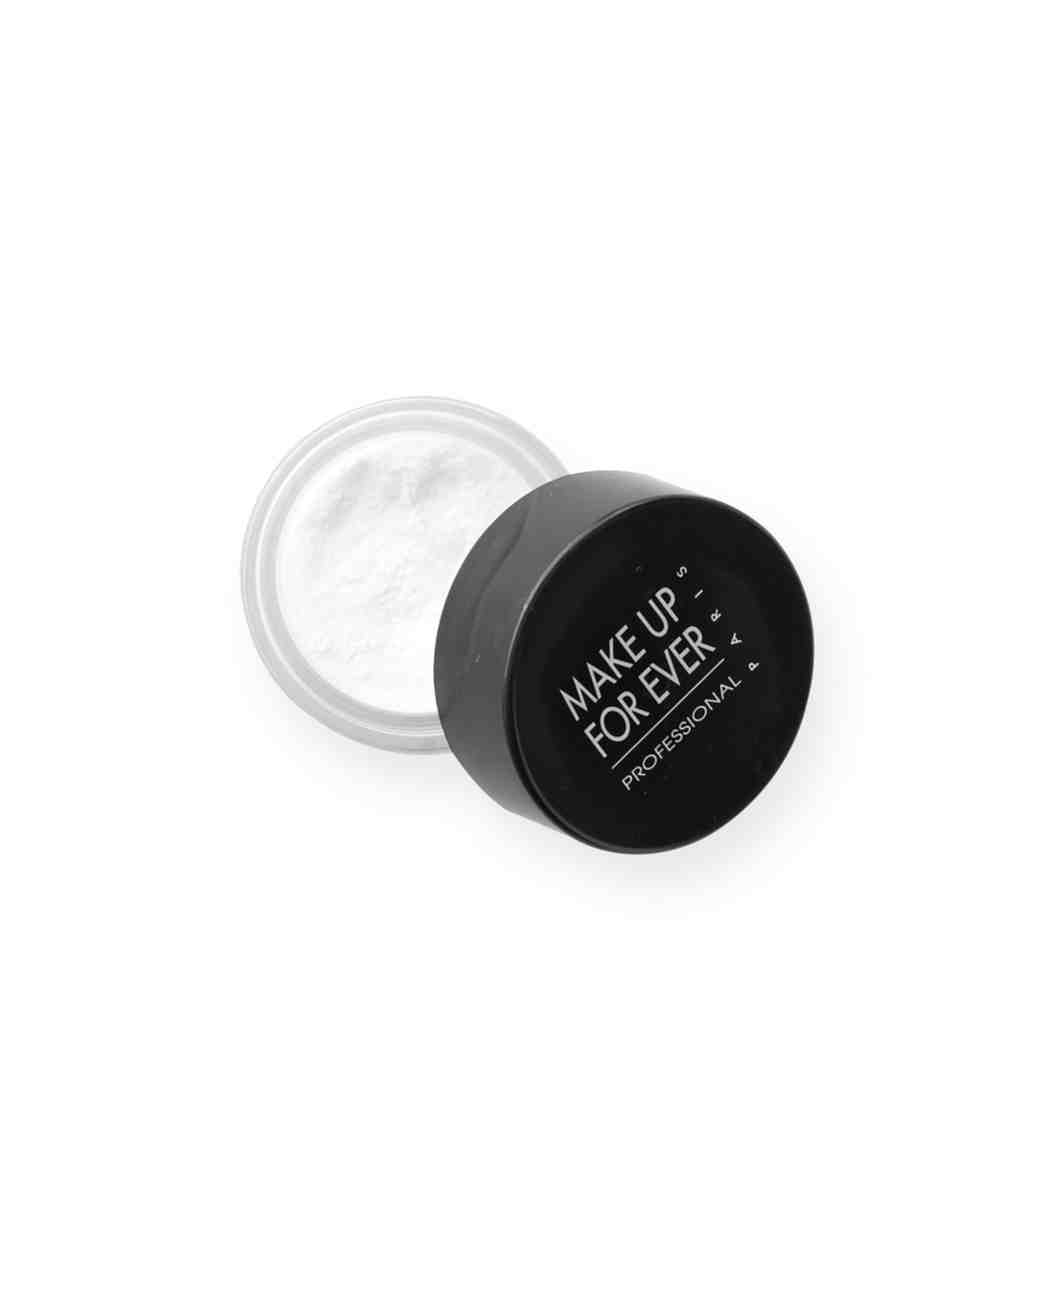 beauty-base-brush-on-powder-mwd108515.jpg